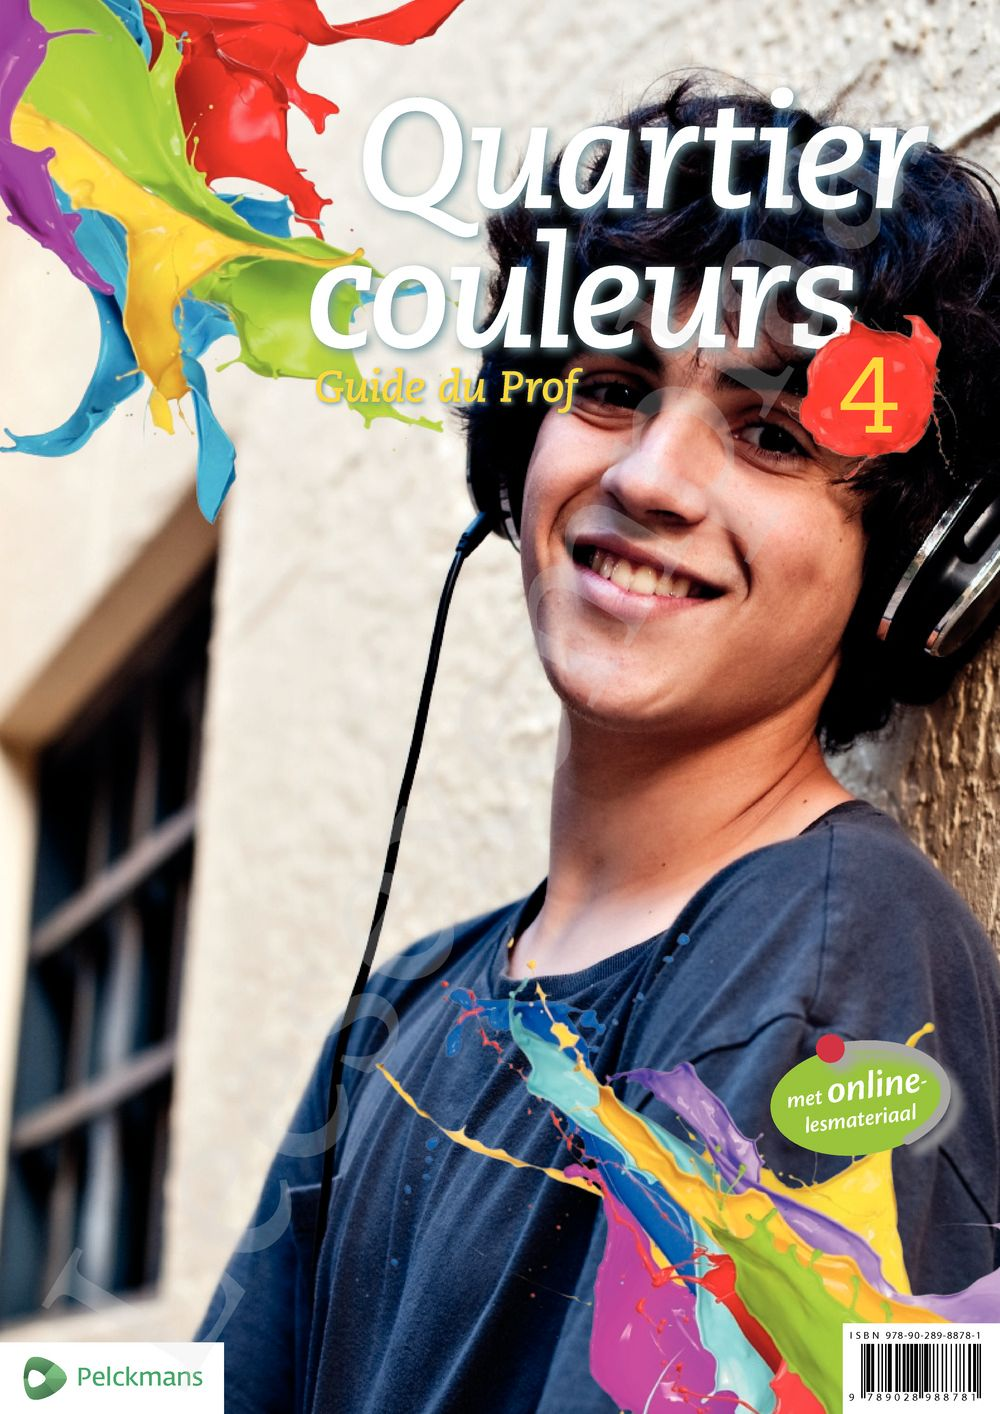 Preview: Quartier couleurs 4 Handleiding